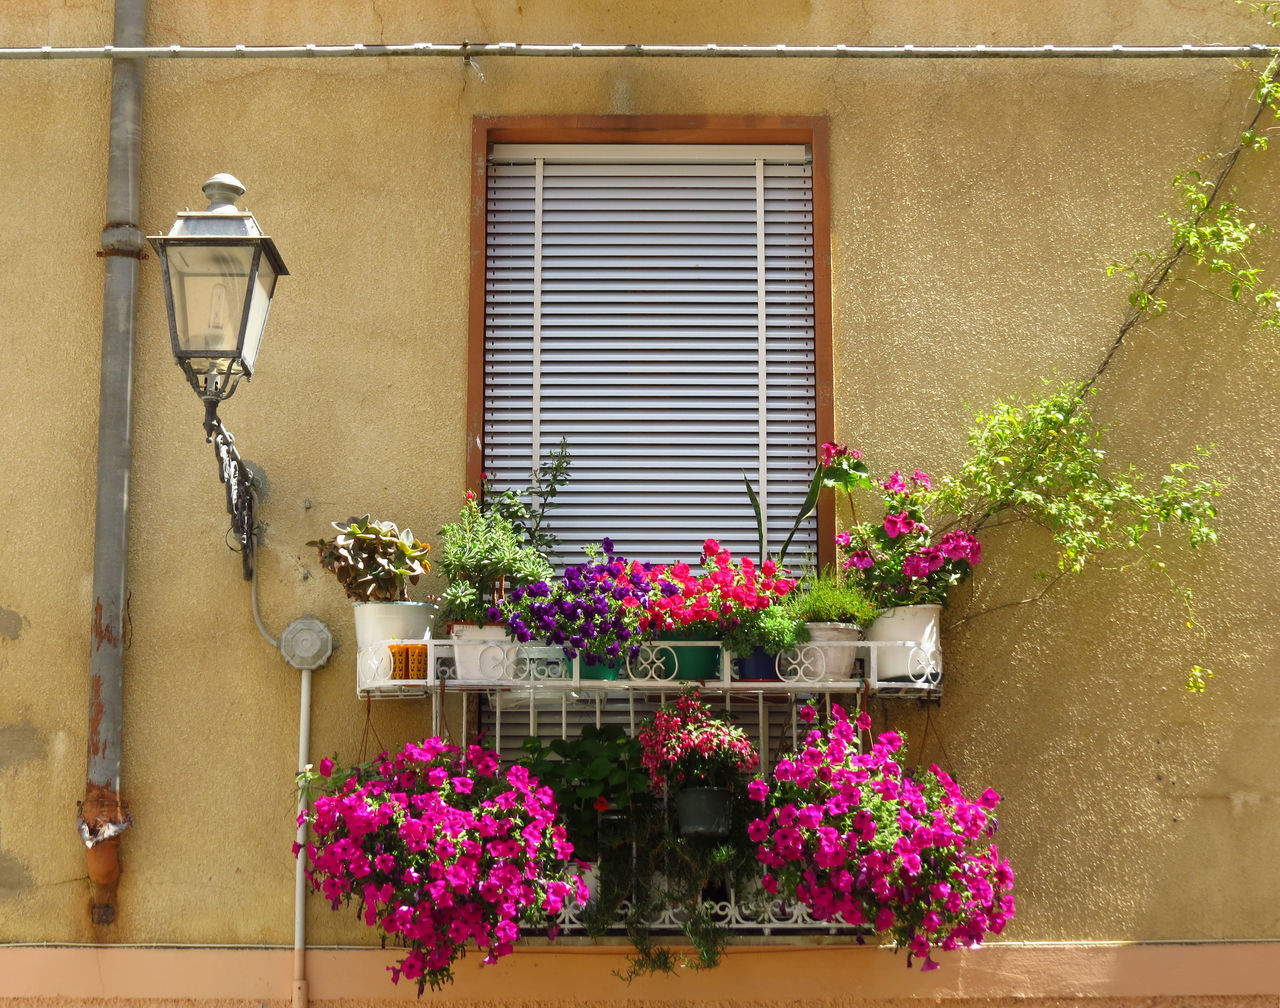 Architecture Architecture Balcony Balcony Garden Balcony Life Balcony Shot Balcony View Balkon Balkonien Building Exterior Built Structure Flower Boxes Italian Architecture Italien Italy Planter Sardinia Sardinia Sardegna Italy  The Architect - 2017 EyeEm Awards Urban Garden Urban Jungle Window Window Box Window Boxes Windows